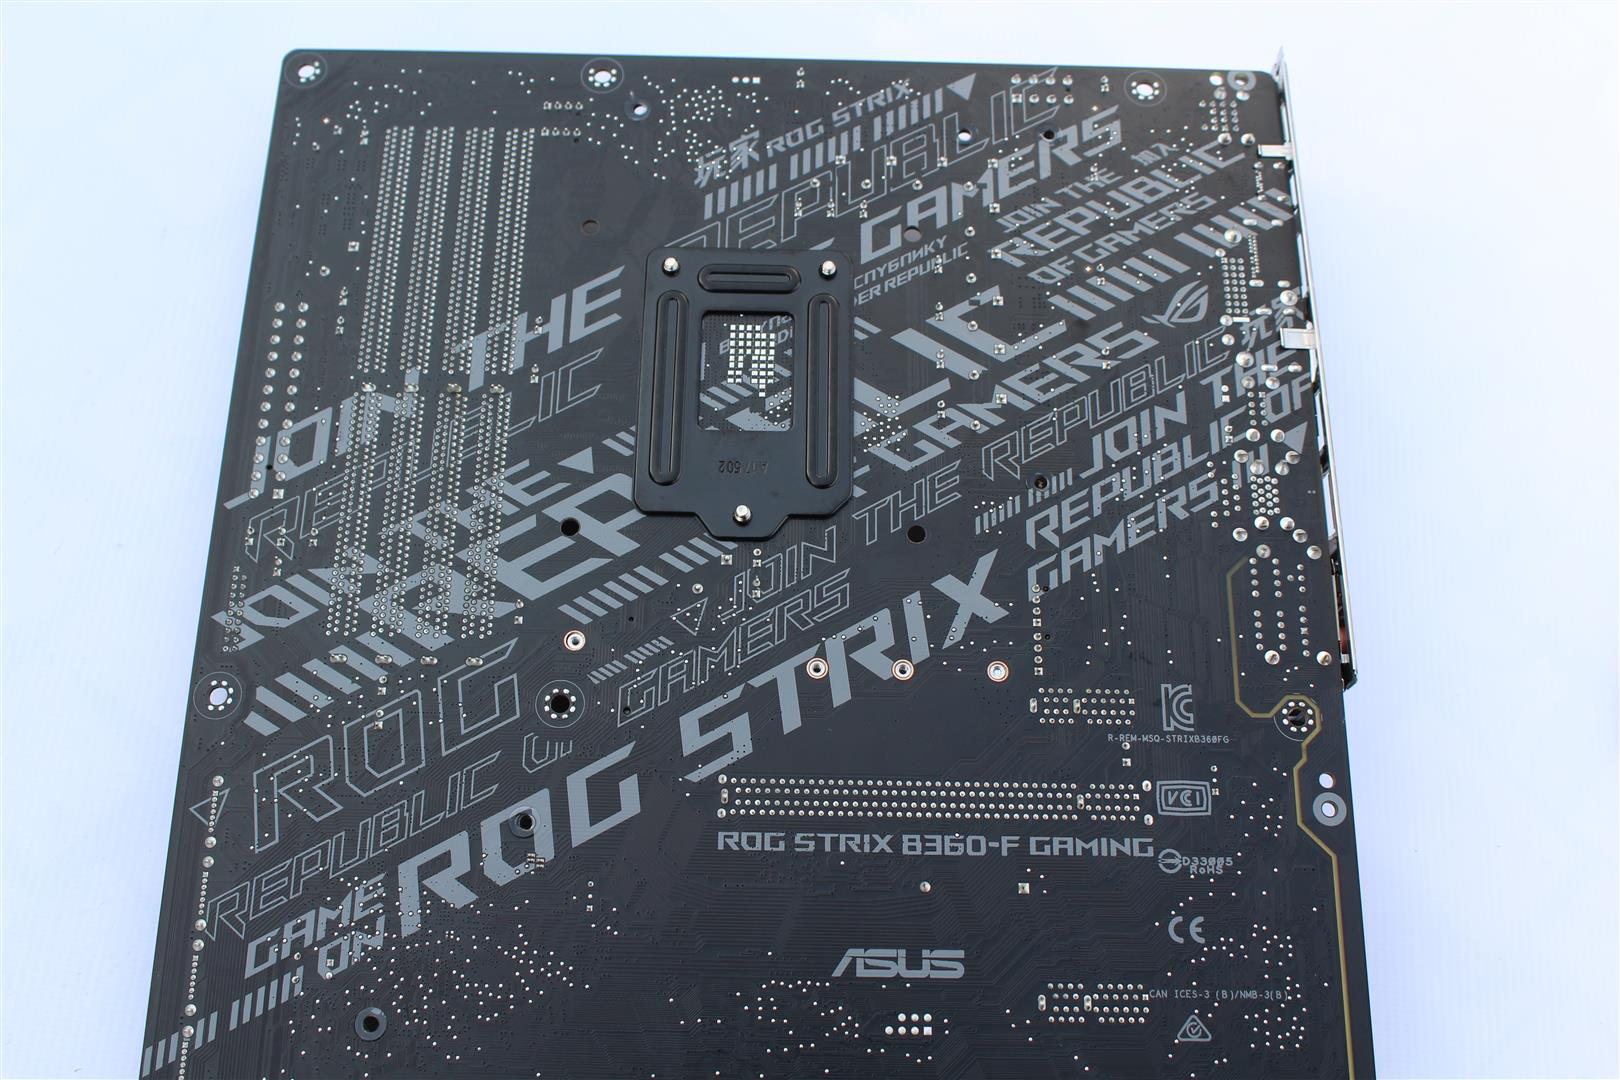 ASUS ROG STRIX B360-F Gaming Motherboard Review - PC TeK REVIEWS